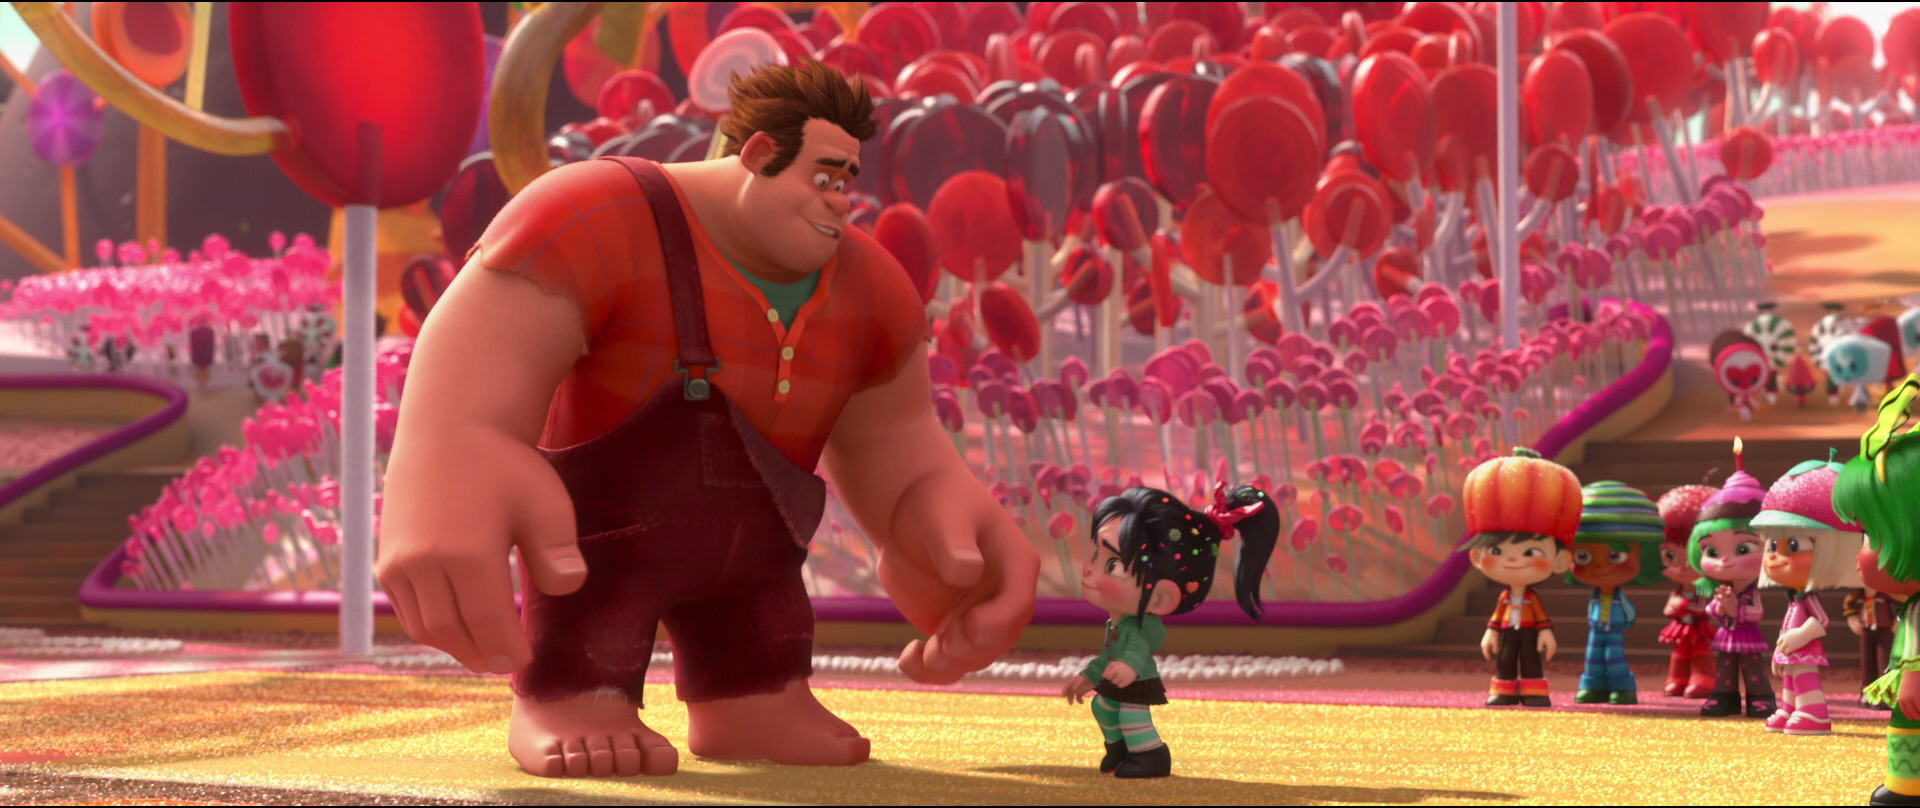 wreck-it-ralph-disneyscreencaps.com-10764